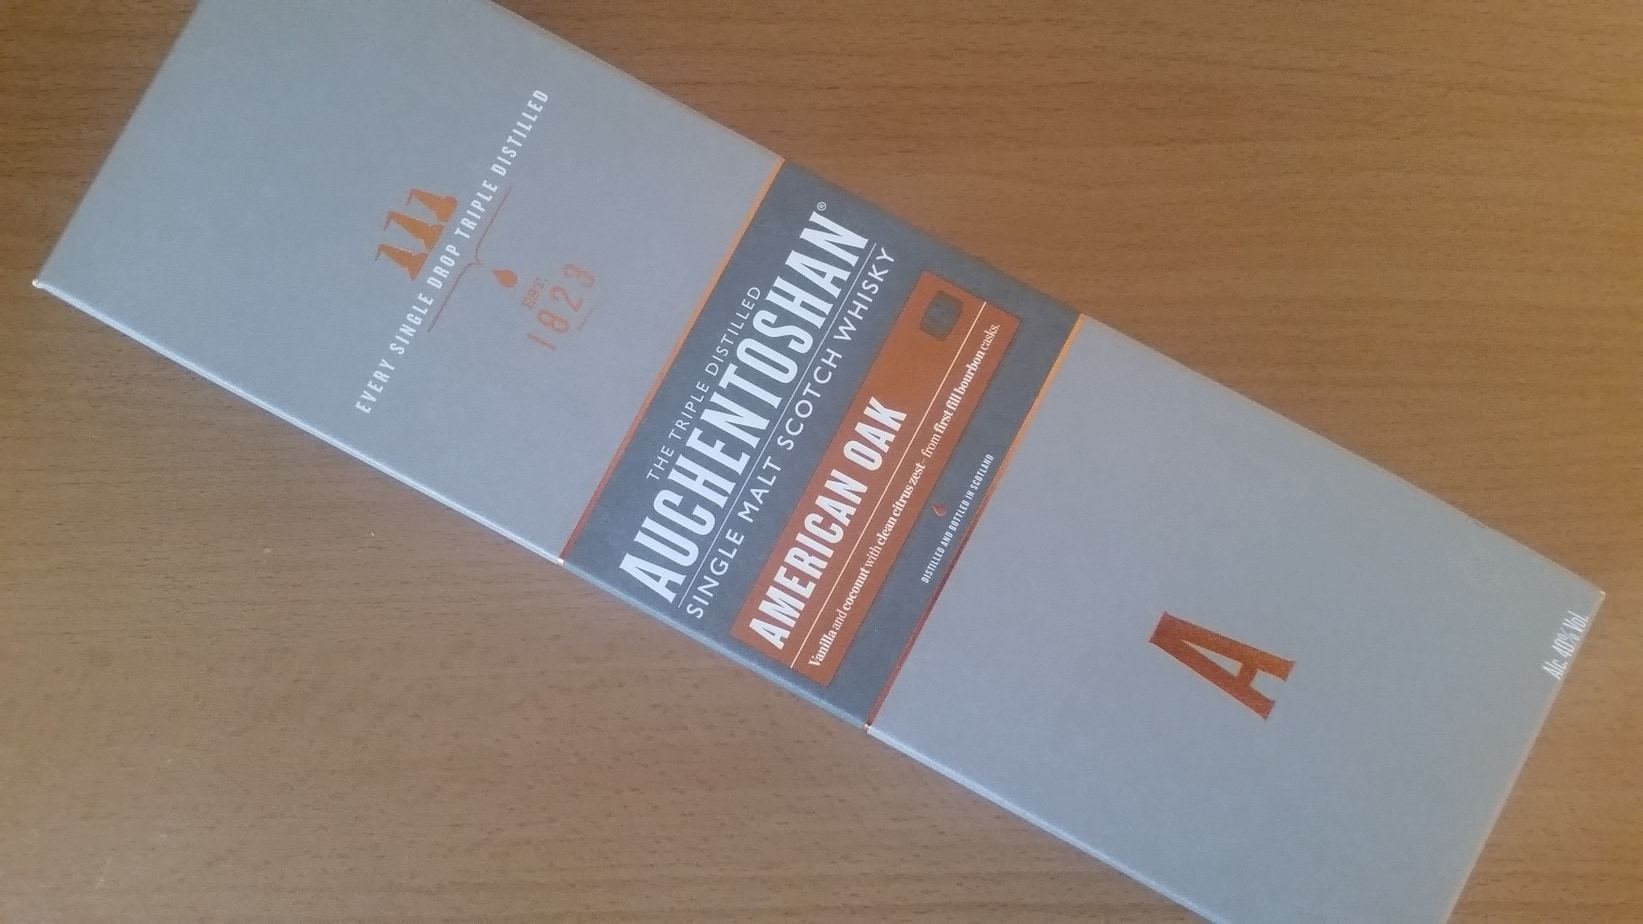 The Auchentoshan American Oak Box